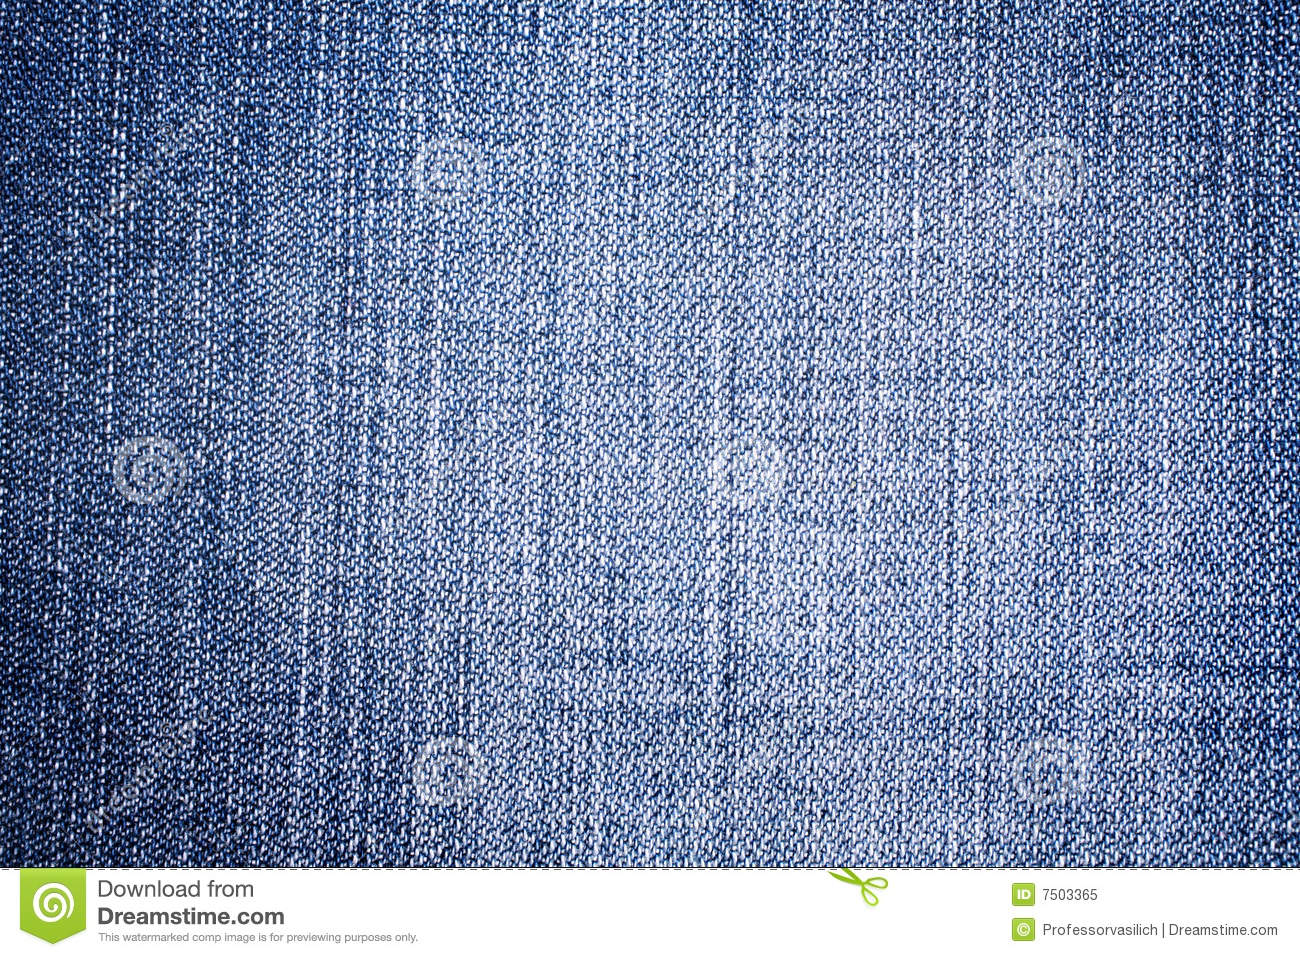 Jeans textured backgrounds